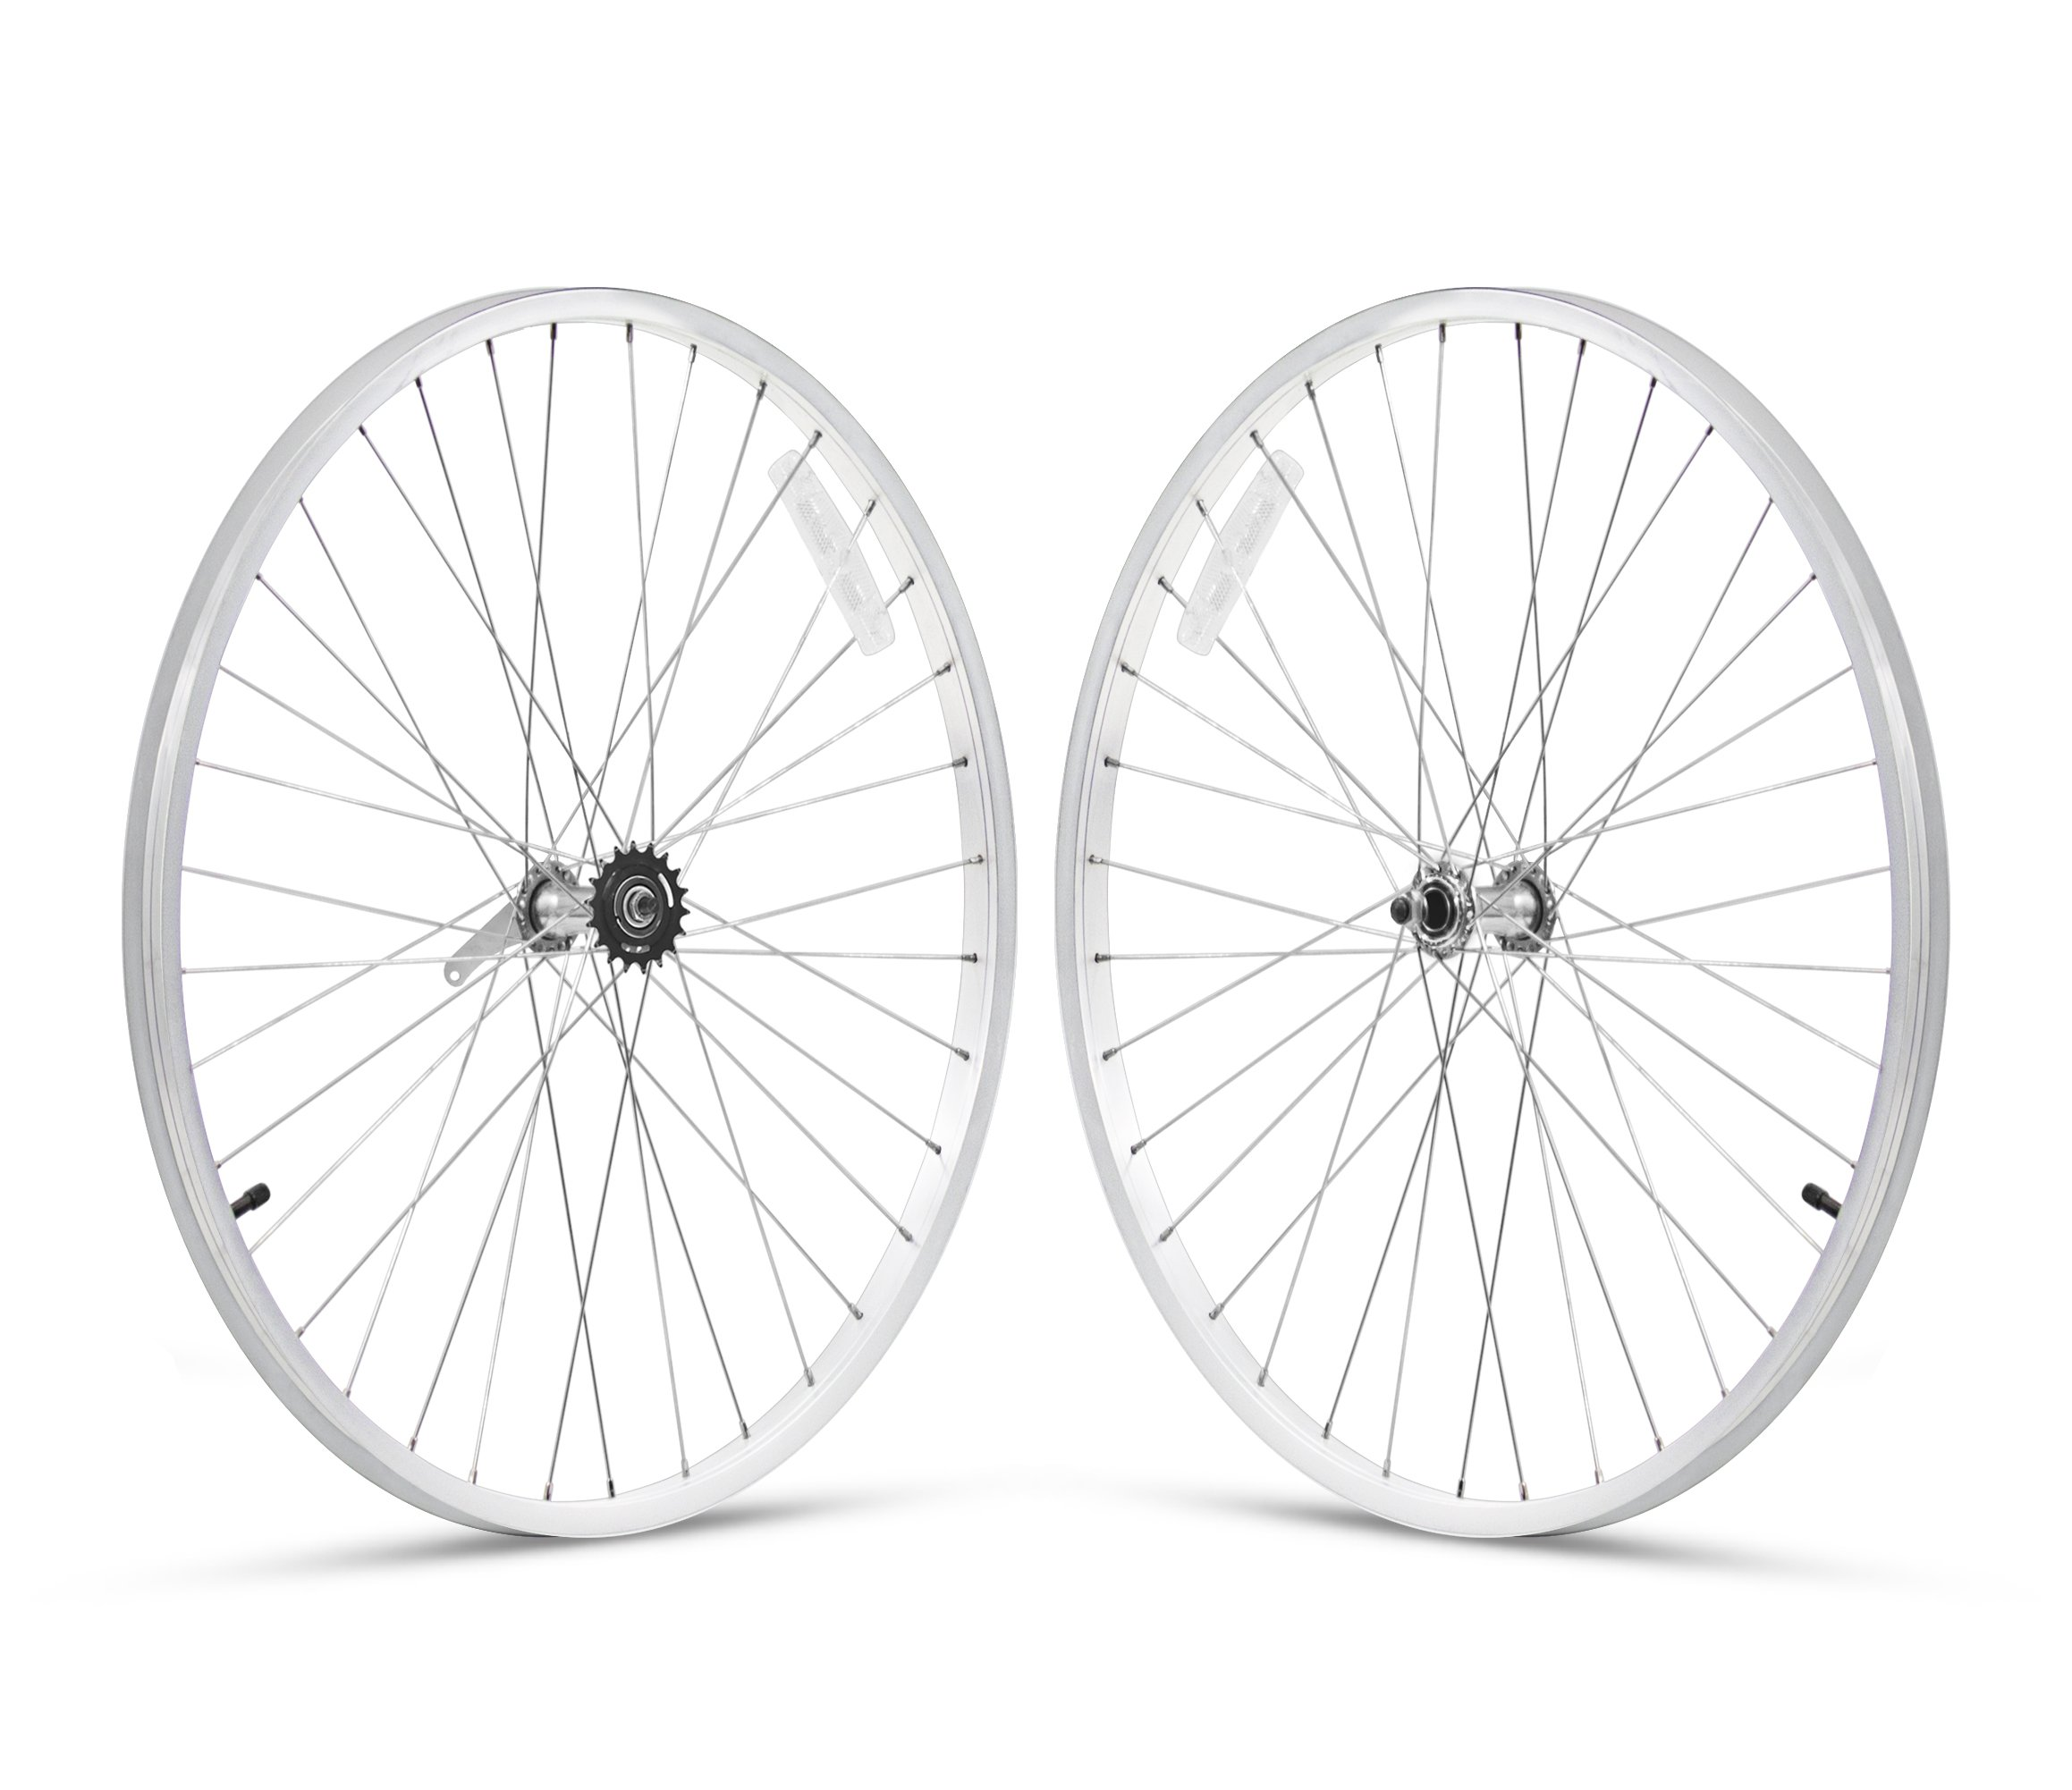 Firmstrong 1-Speed Beach Cruiser Bicycle Wheelset, Front/Rear, White, 26'' by Firmstrong